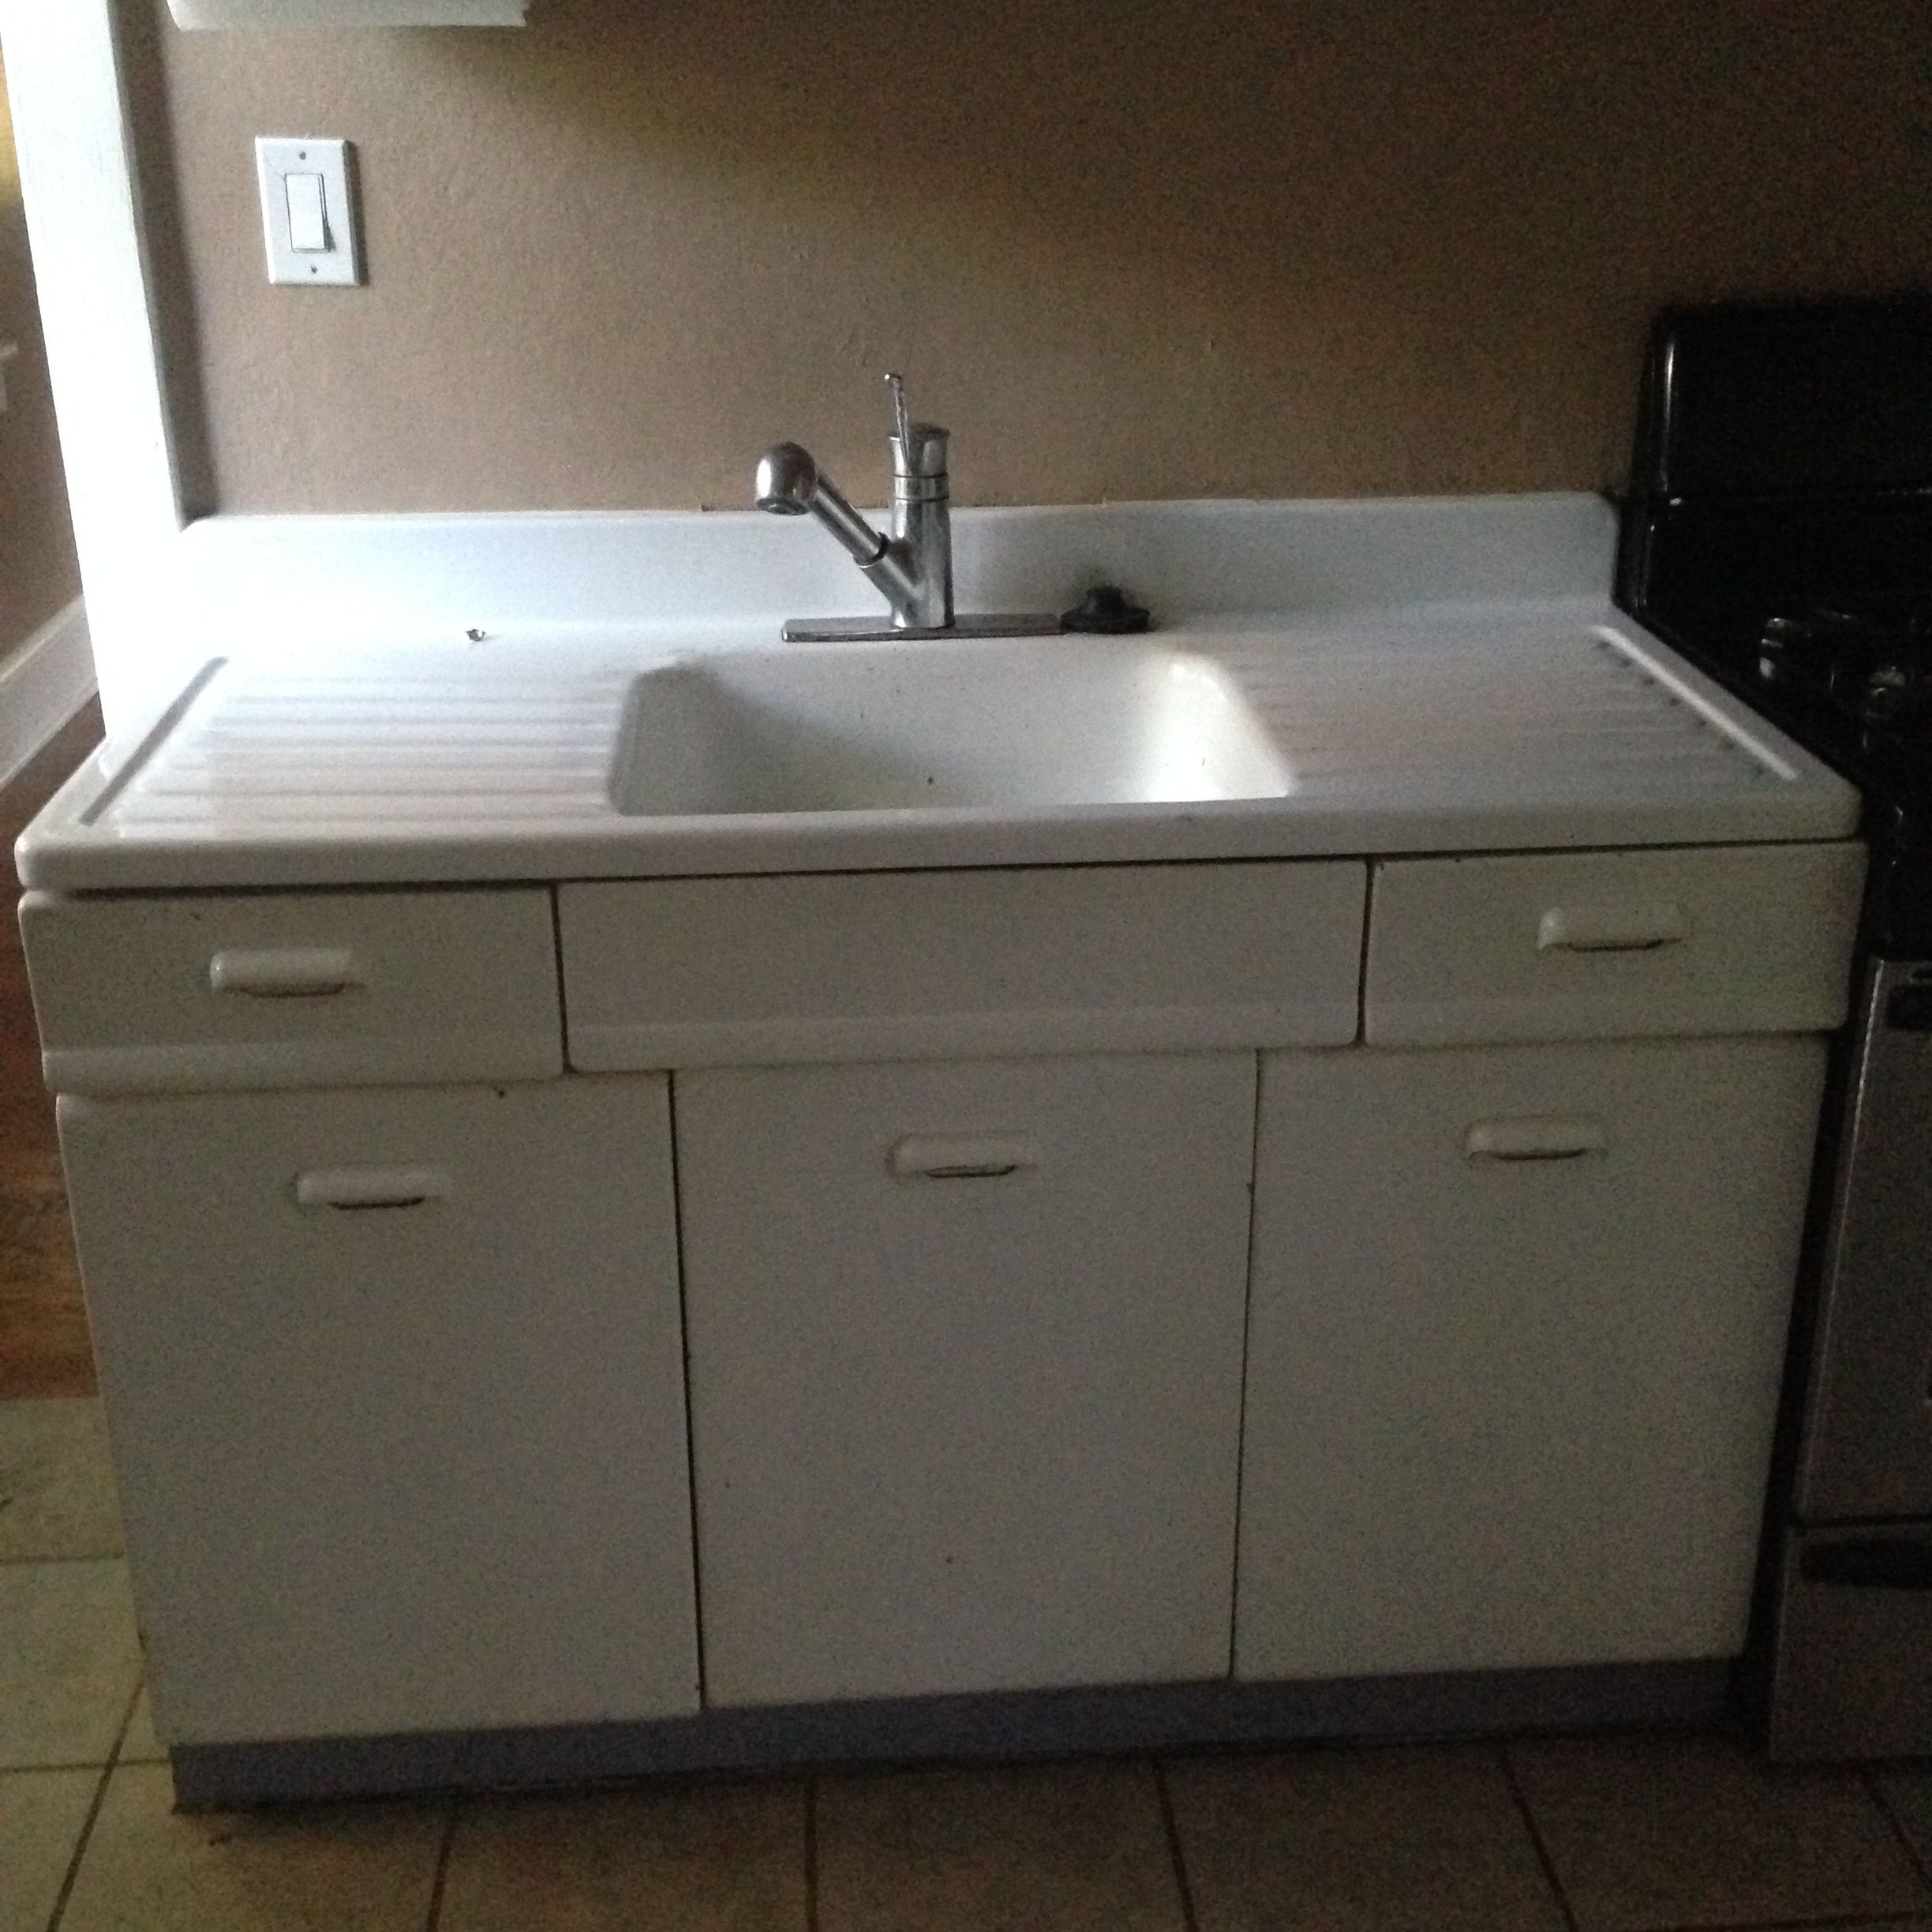 My 1940's drain board sink will put new pulls and new paint.  Love that the cabinets and drawers are metal.